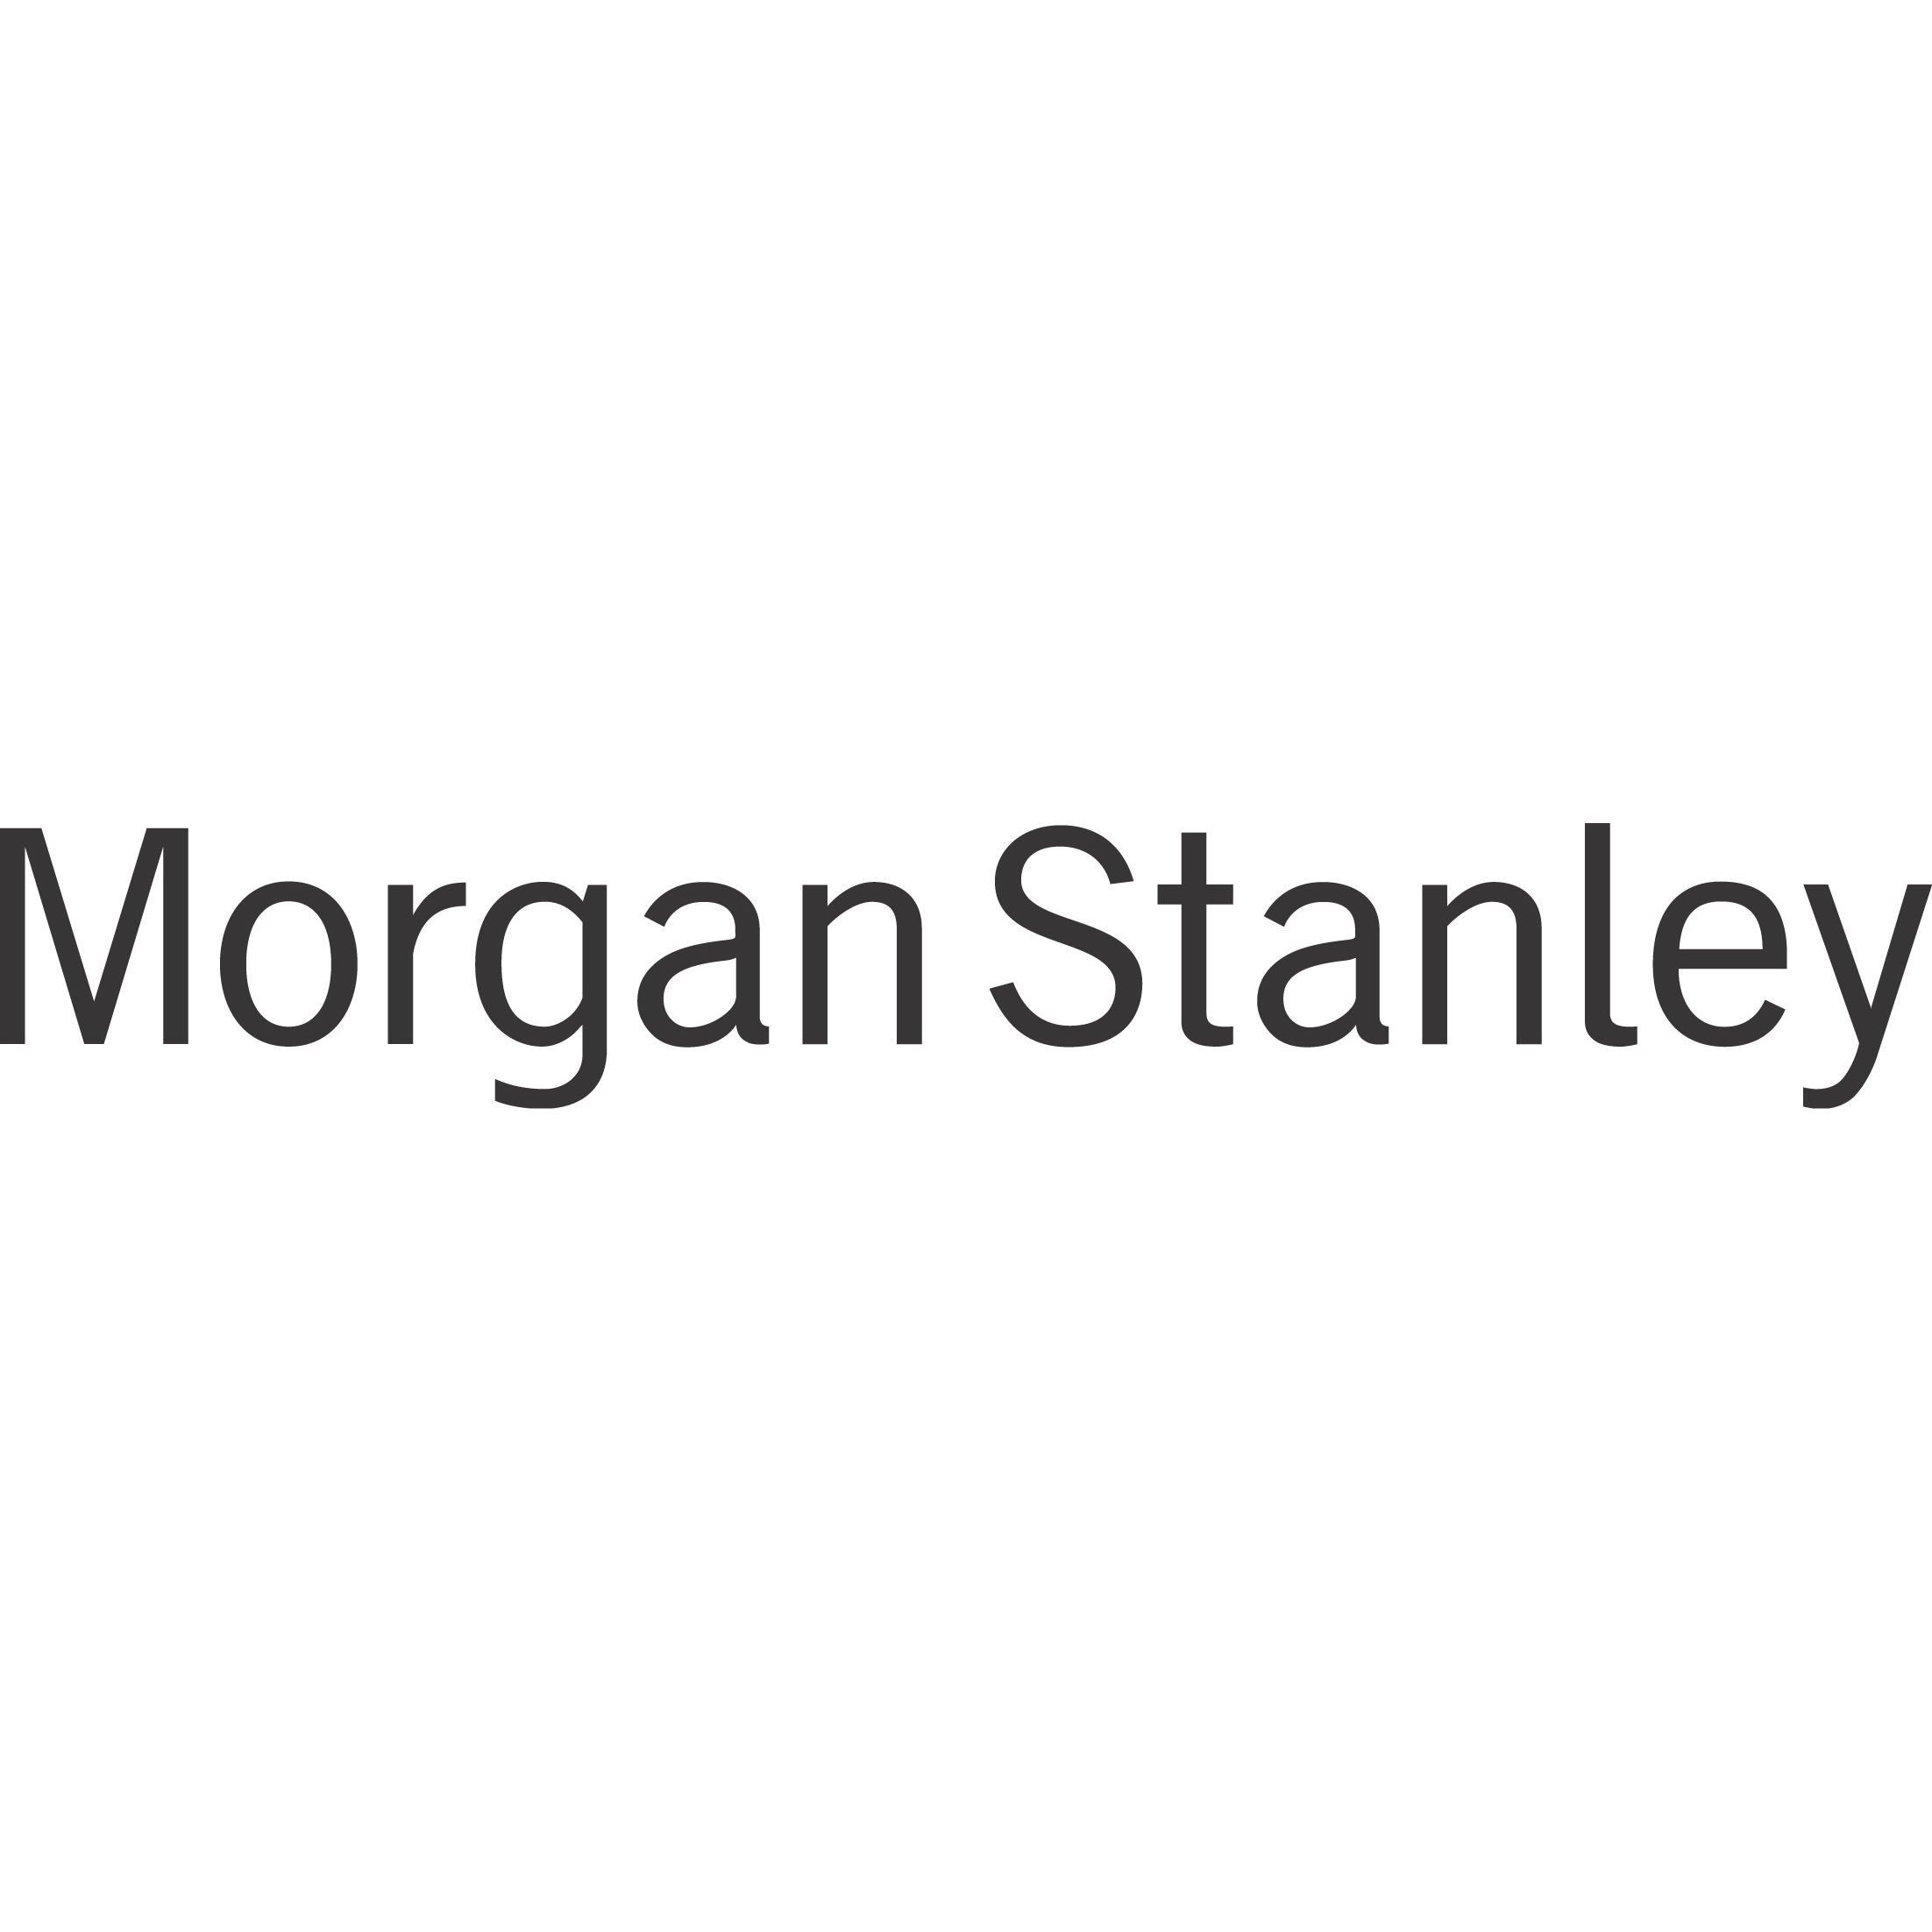 Brian Donohoe - Morgan Stanley | Financial Advisor in Troy,Michigan